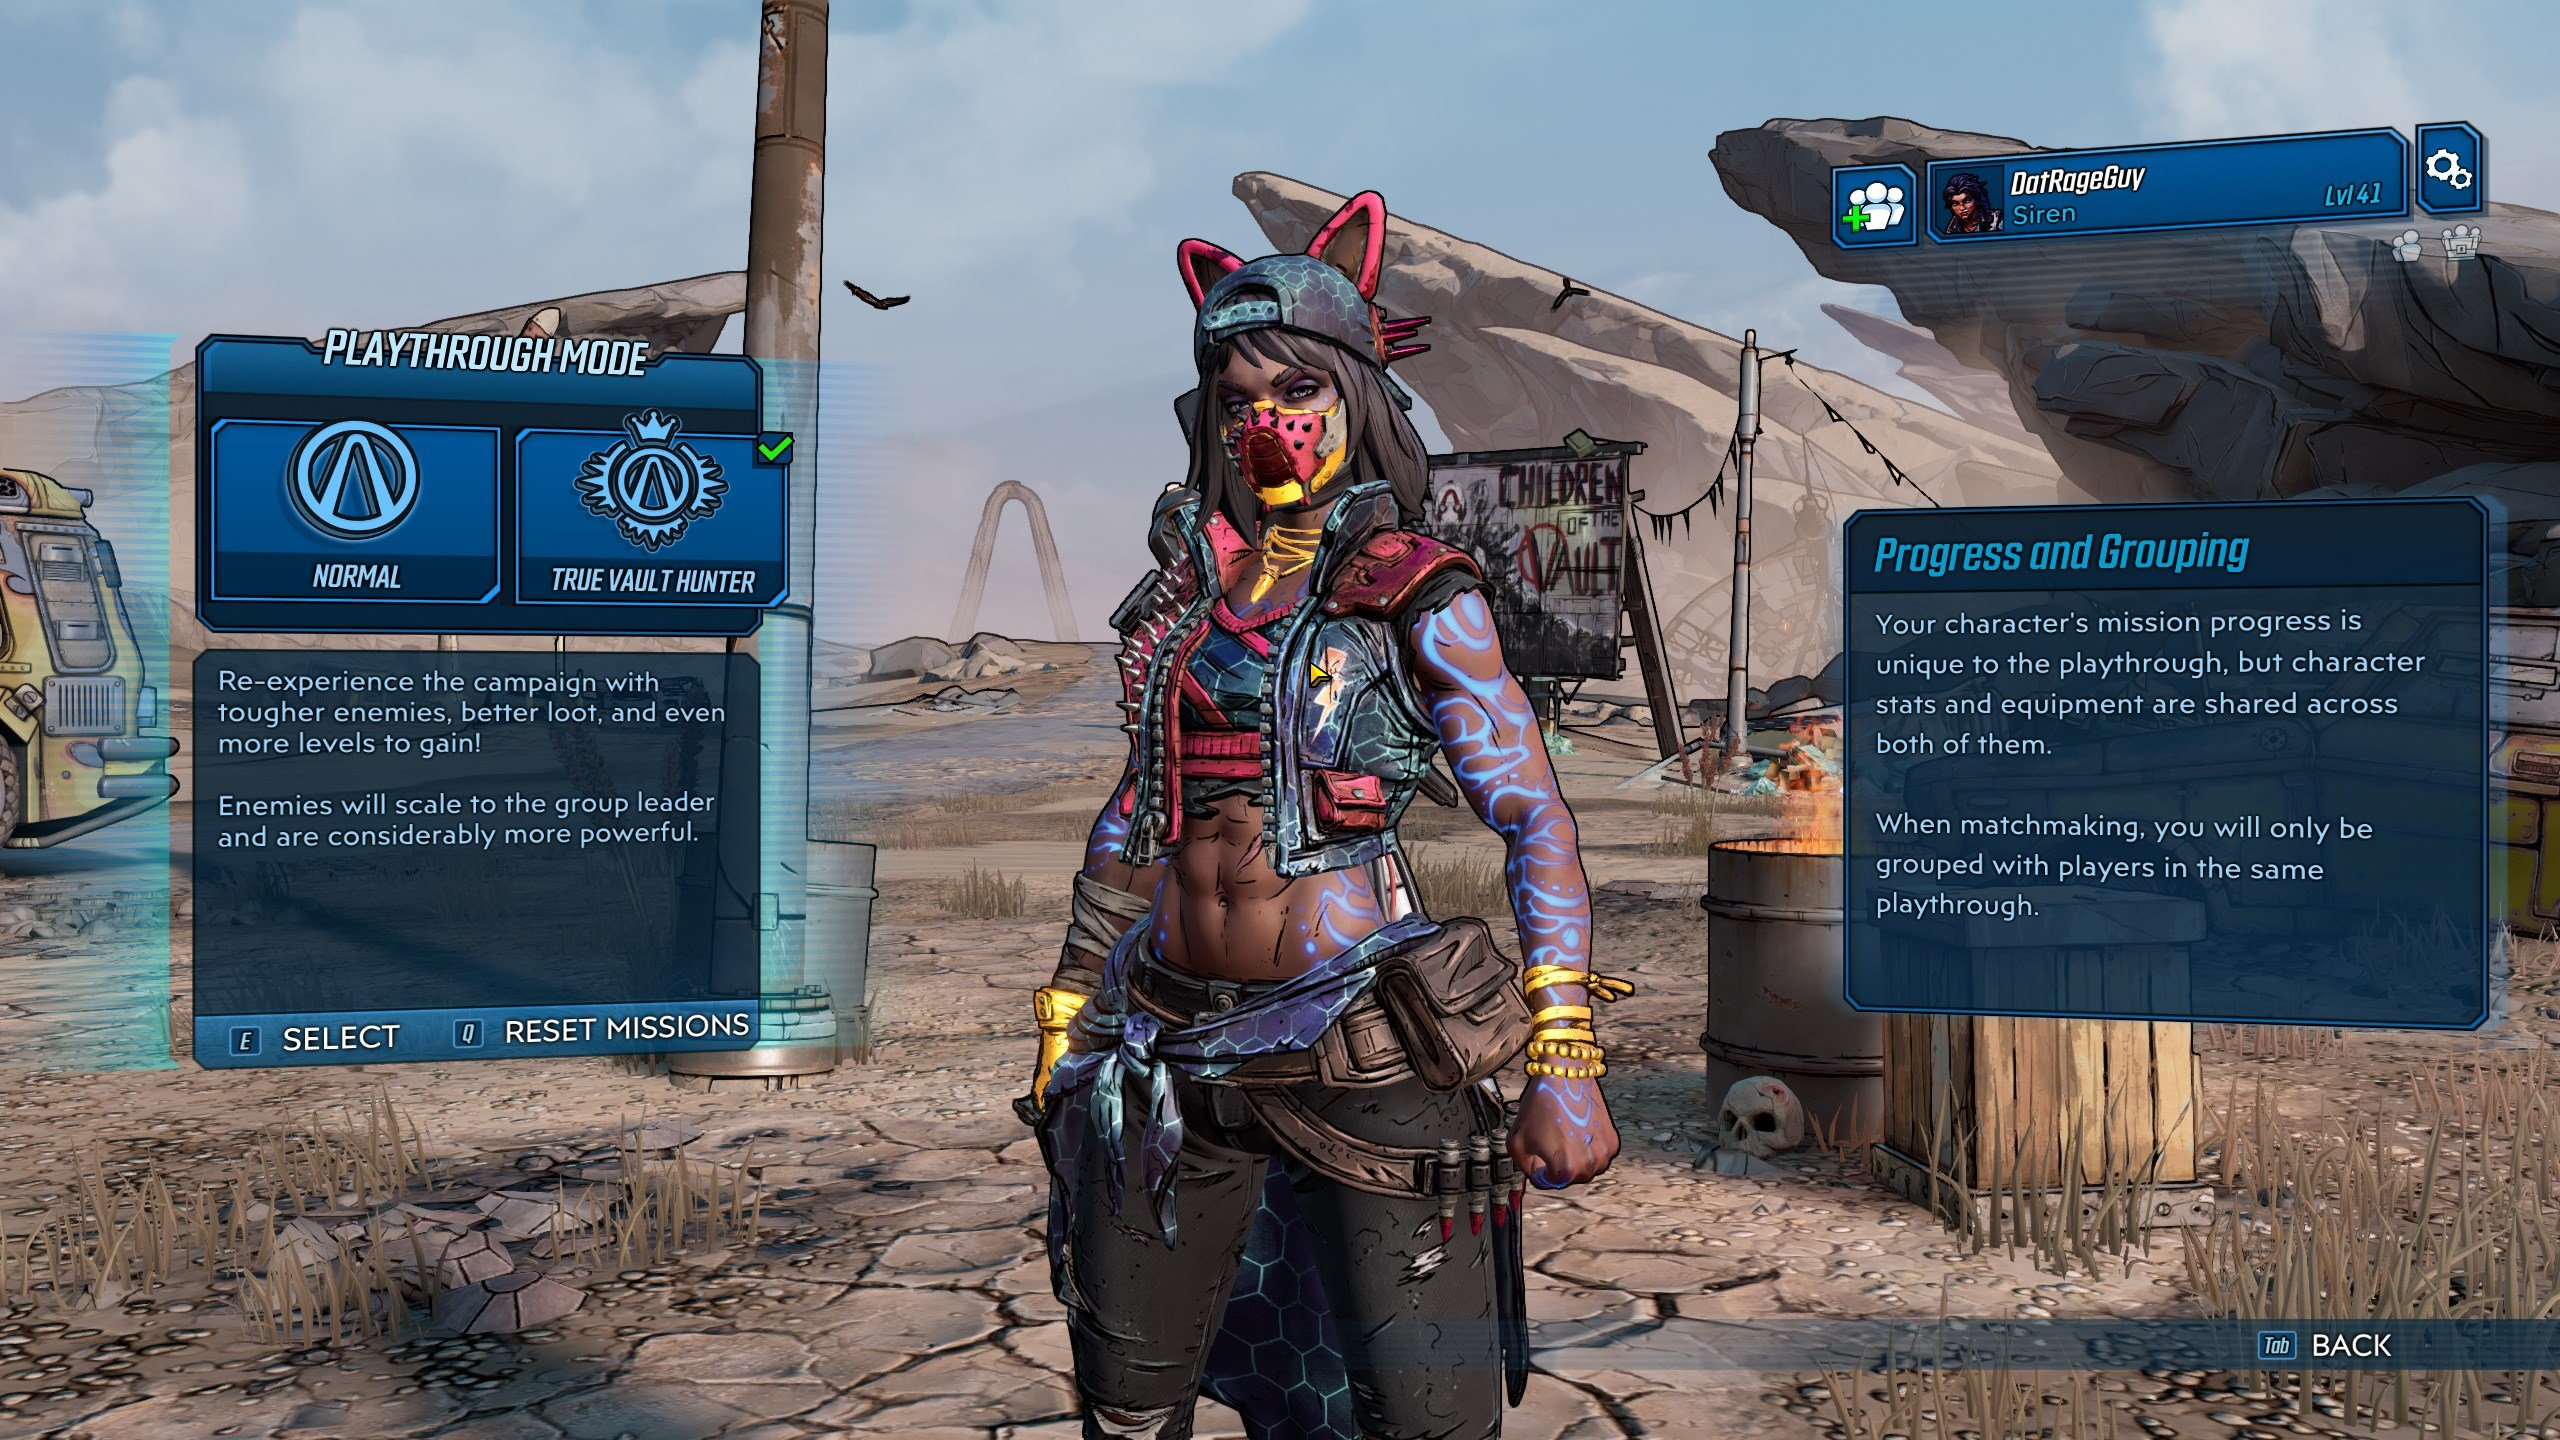 Borderlands 3 - True Vault Hunter Mode